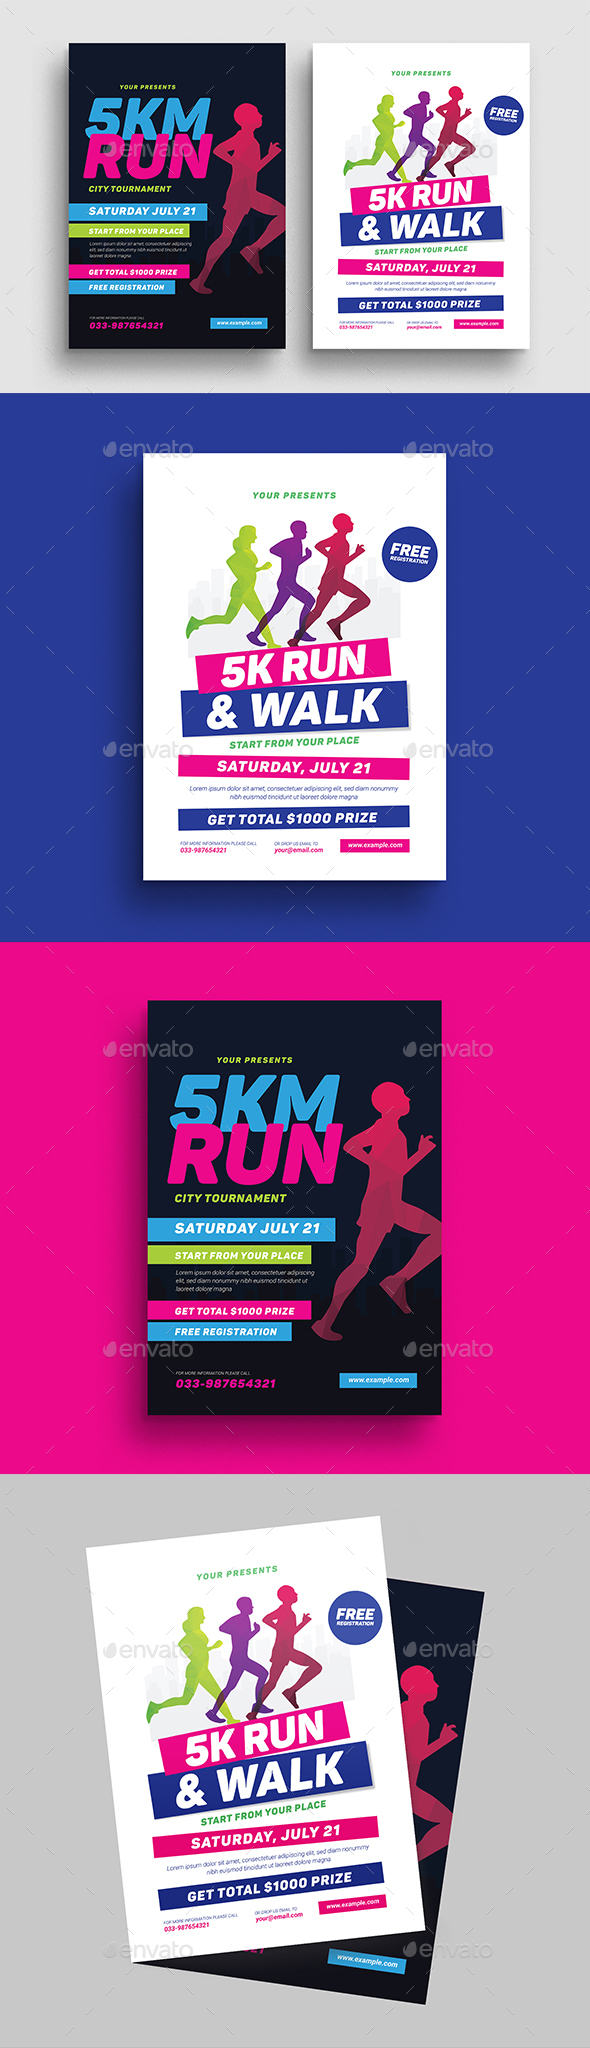 5k Run Event Flyer - Sports Events